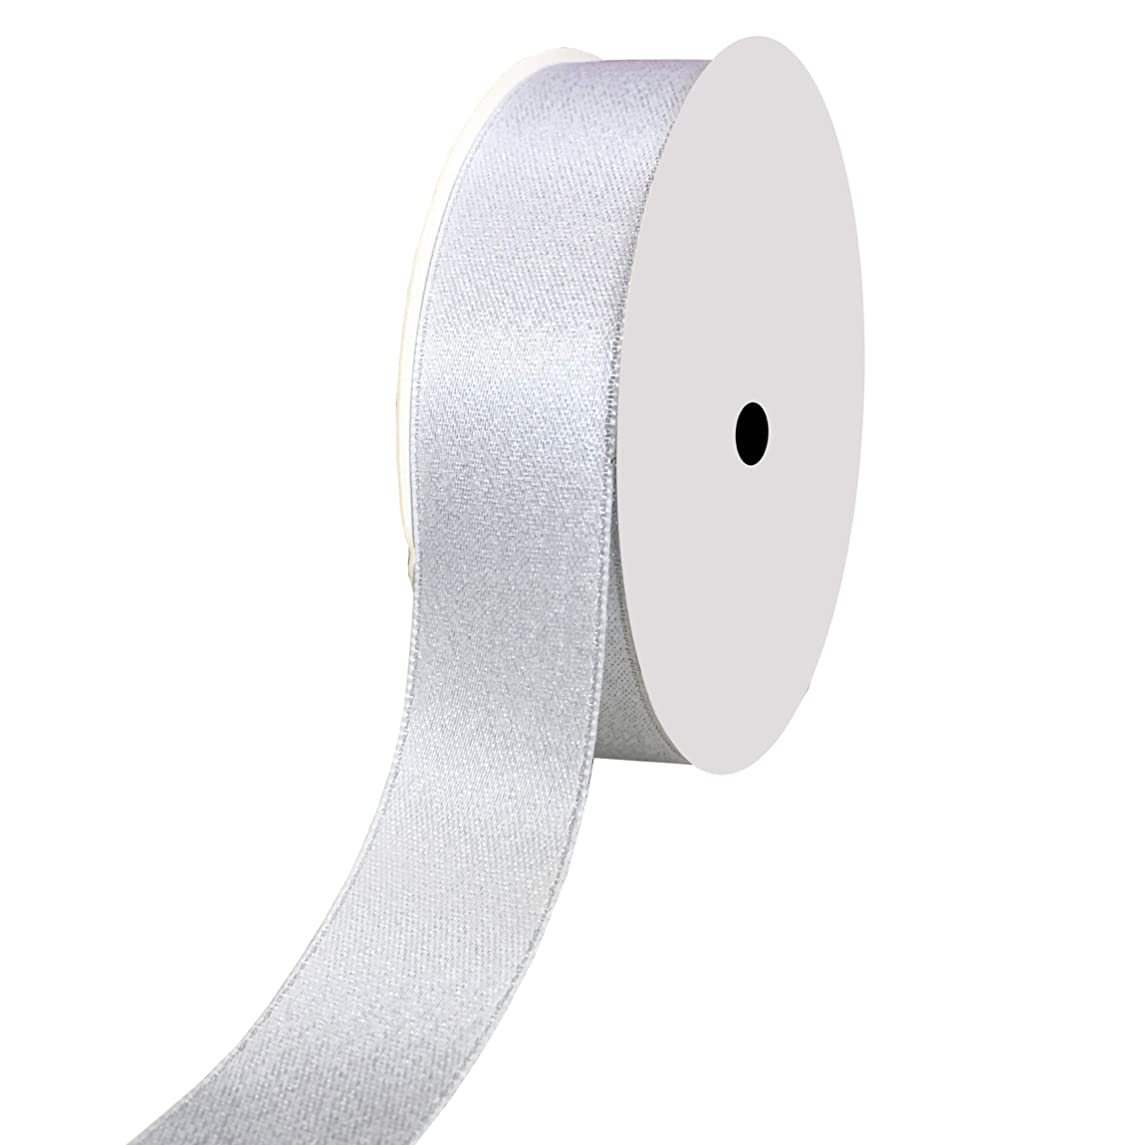 DUOQU 5/8 inch Wide Sparkle Satin Ribbon with Silver Glitter 20 Yards Roll